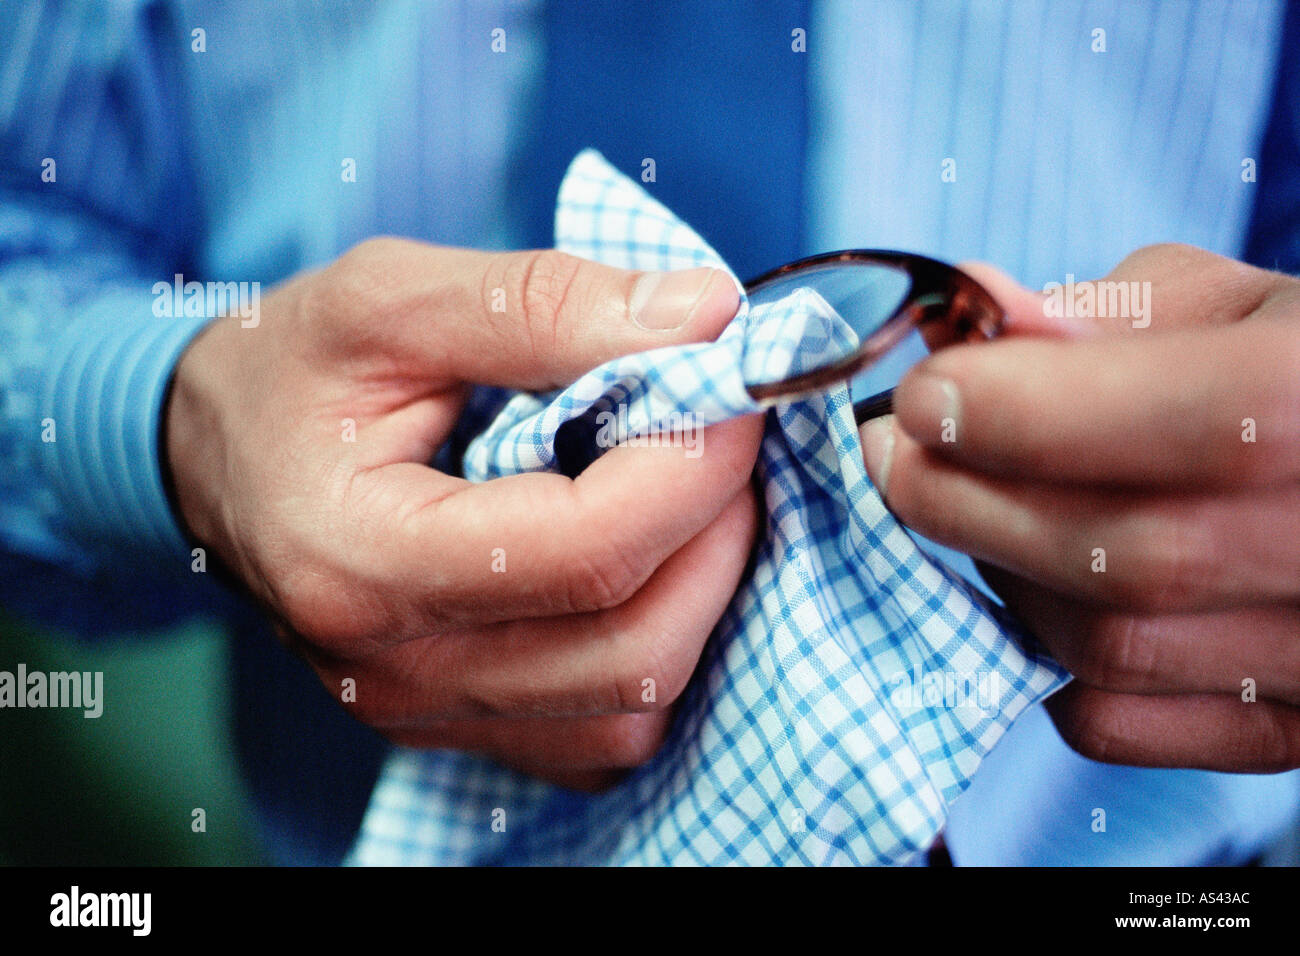 Man cleaning spectacle lenses - Stock Image